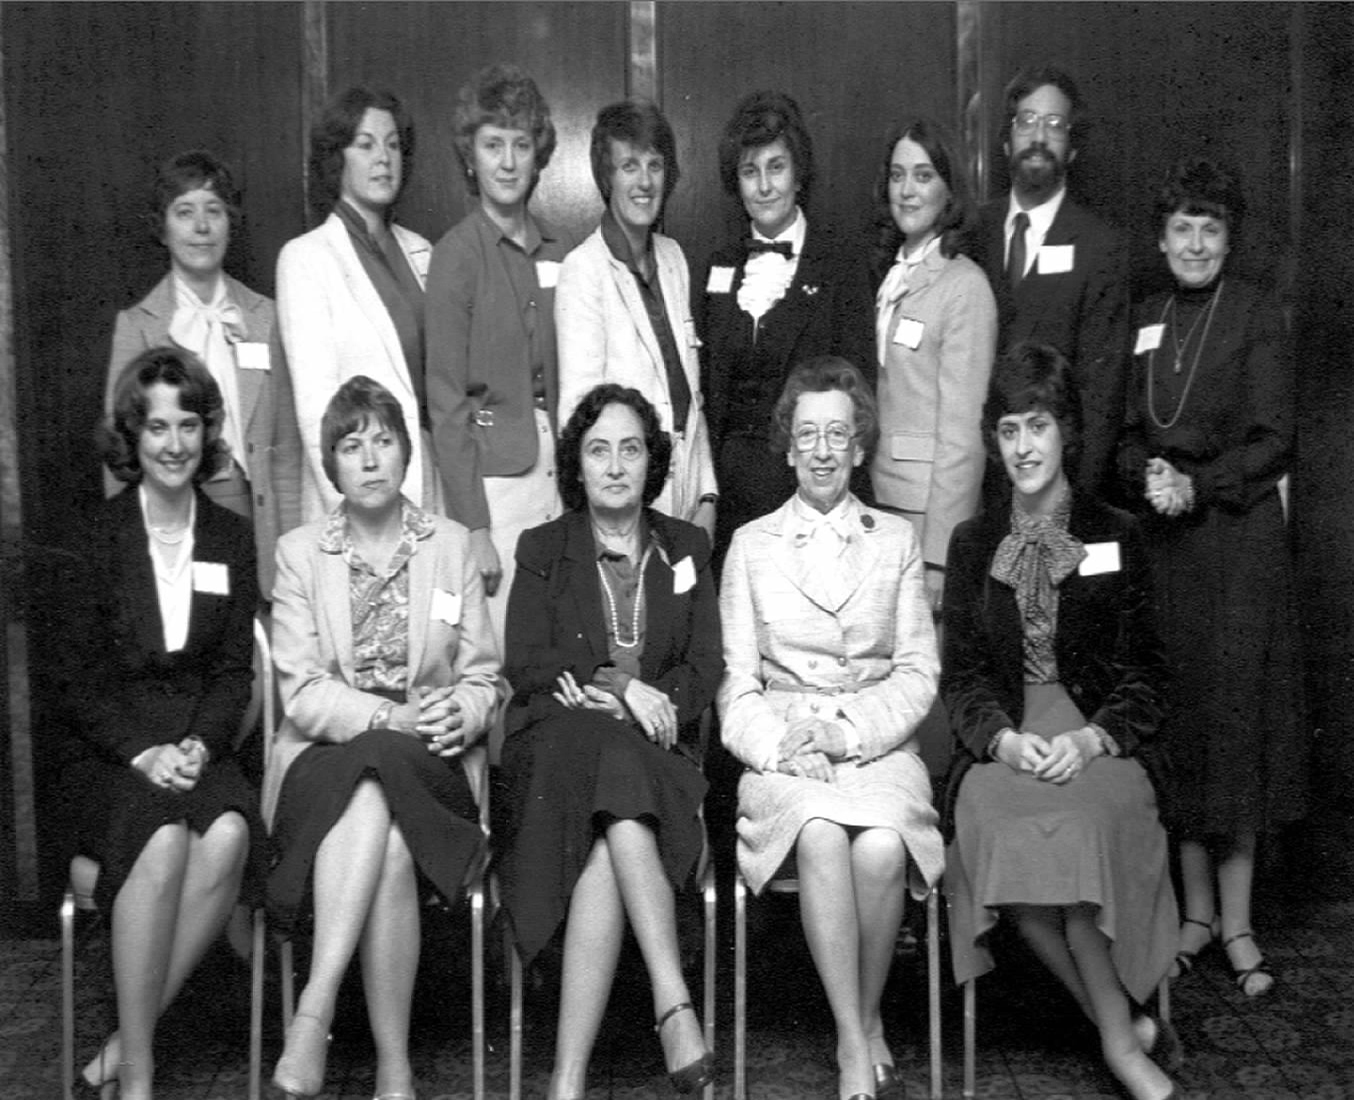 1982 Conference Attendees